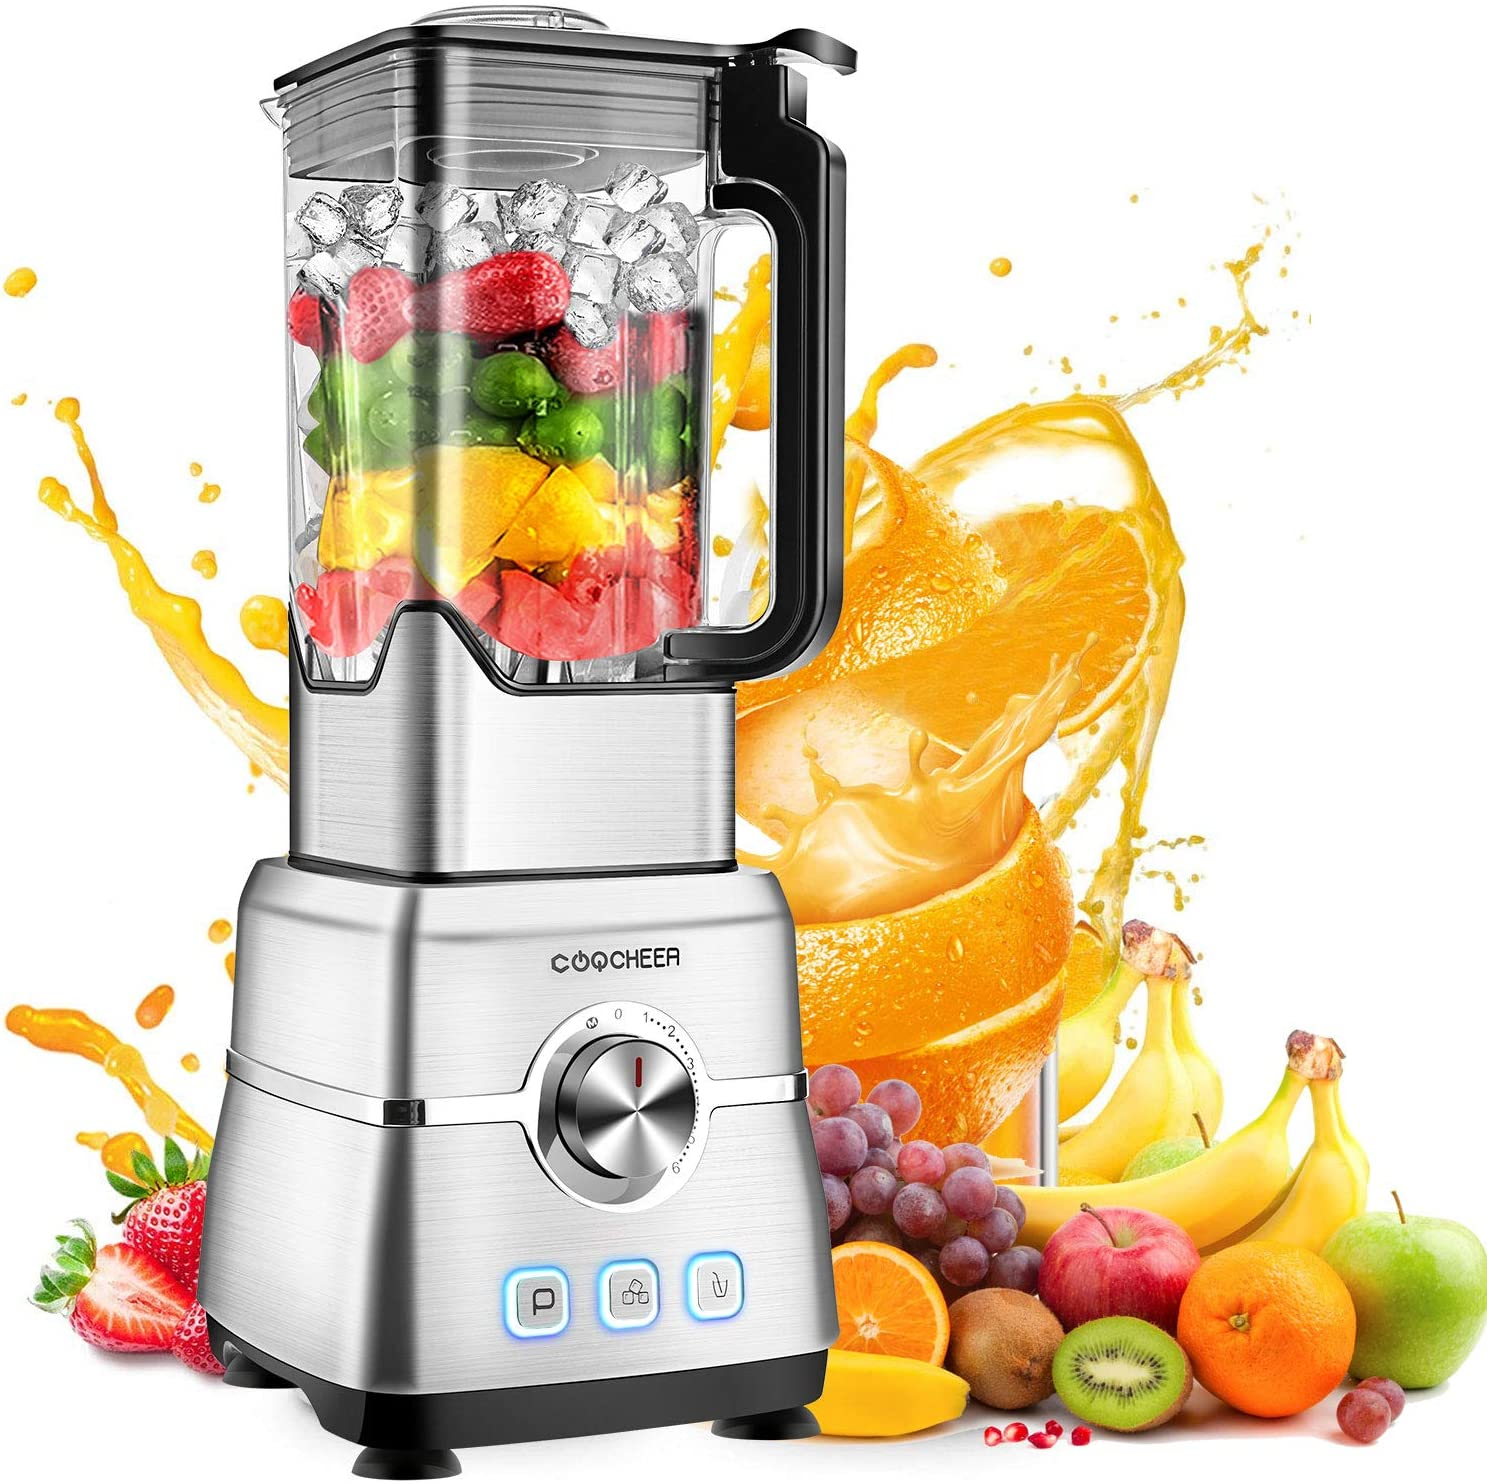 Blender Smoothie Maker, COOCHEER 1800W Blender for Shakes and Smoothies with High-Speed Professional Stainless Countertop, Variable speeds Control, 6 Sharp Blade, 2L BPA Free Tritan Container